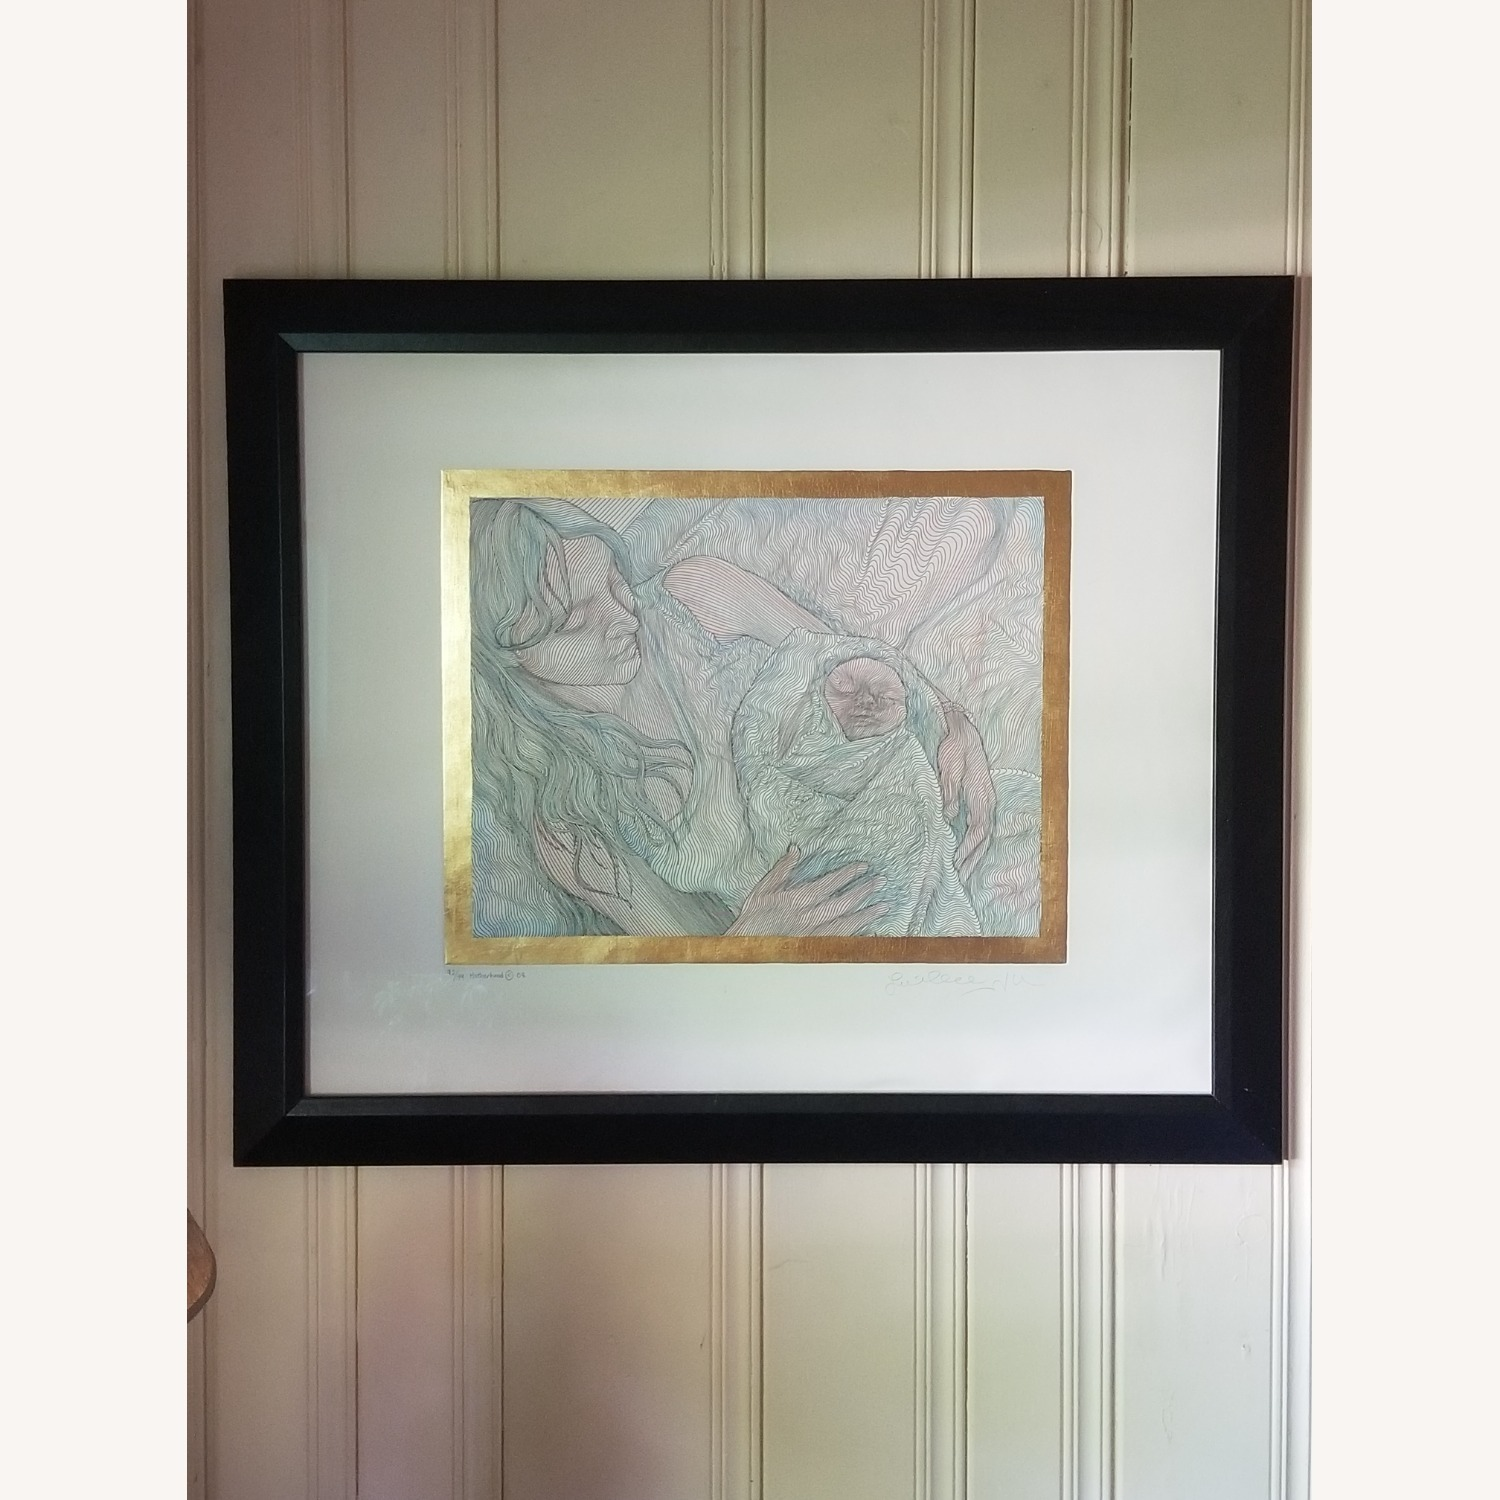 Guillaume Azoulay Original Line Drawing Lithograph - image-1